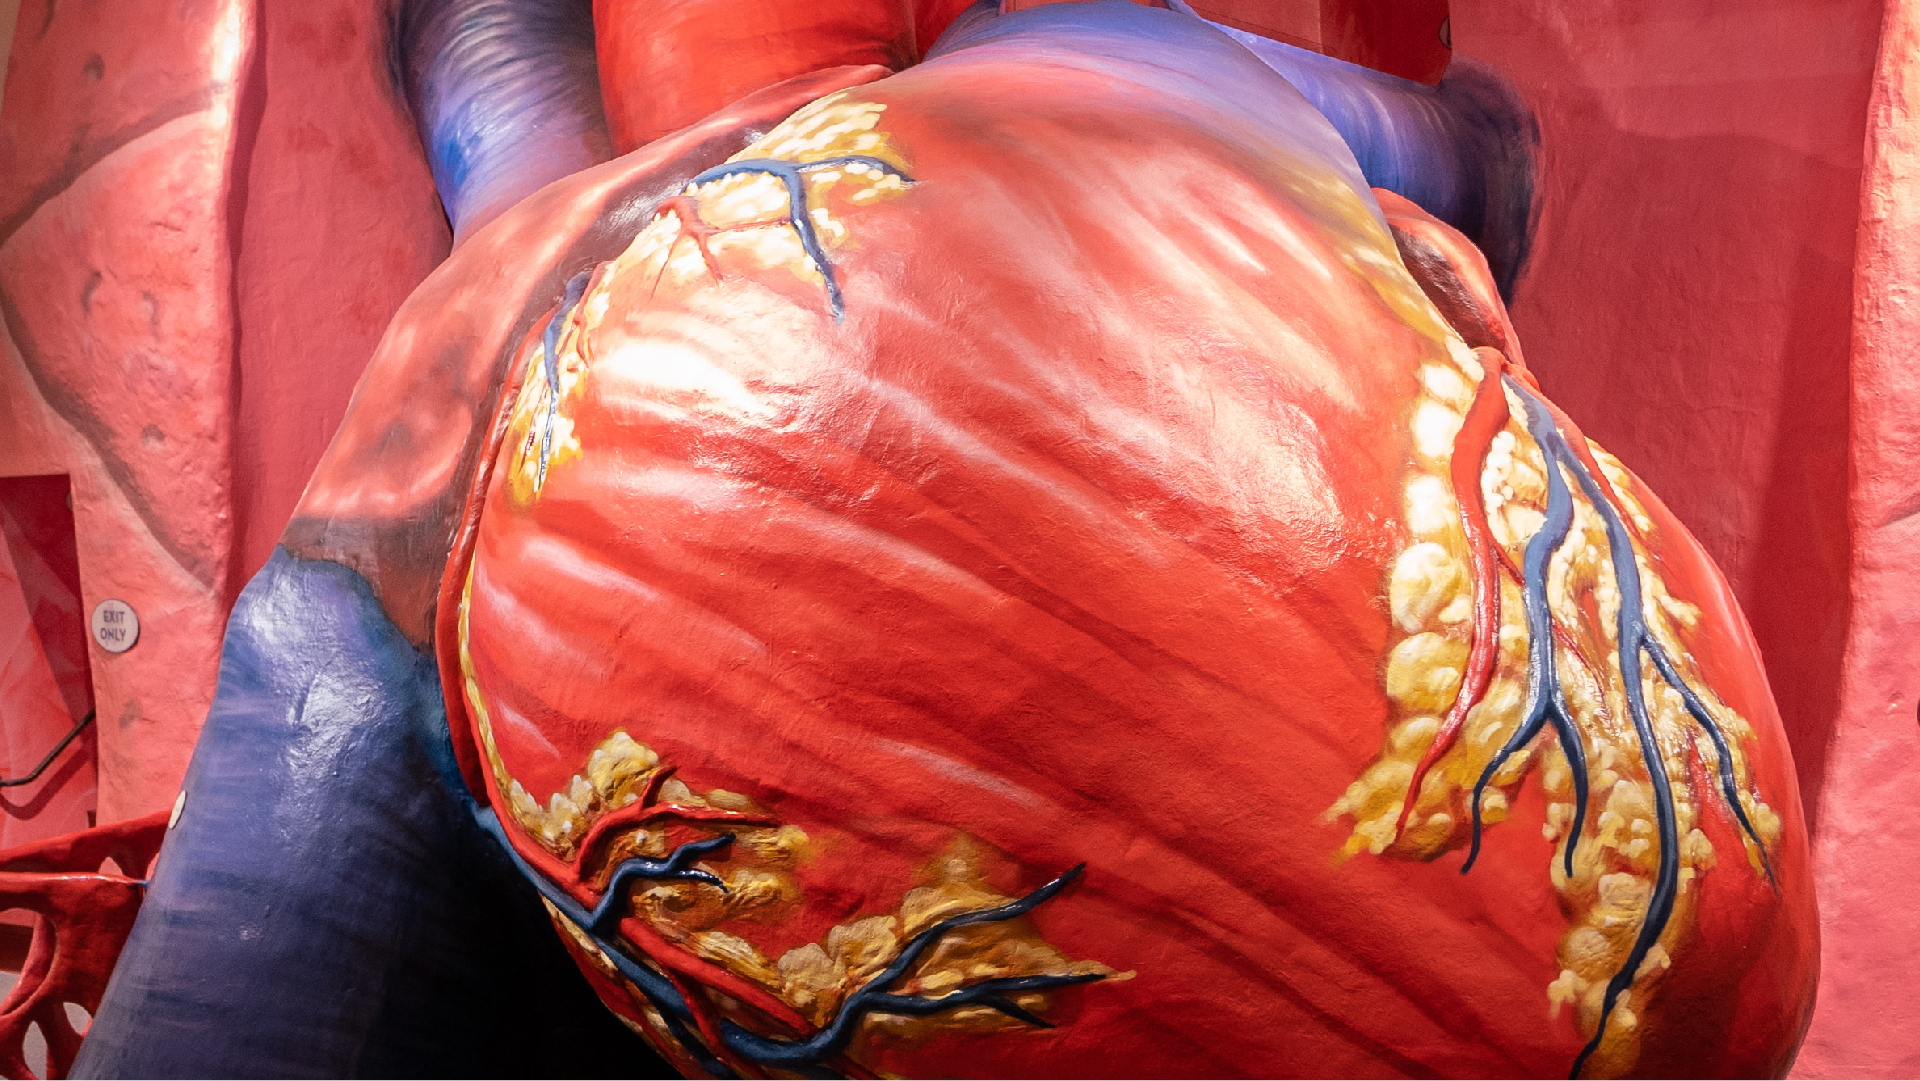 The Franklin Institute Giant Heart